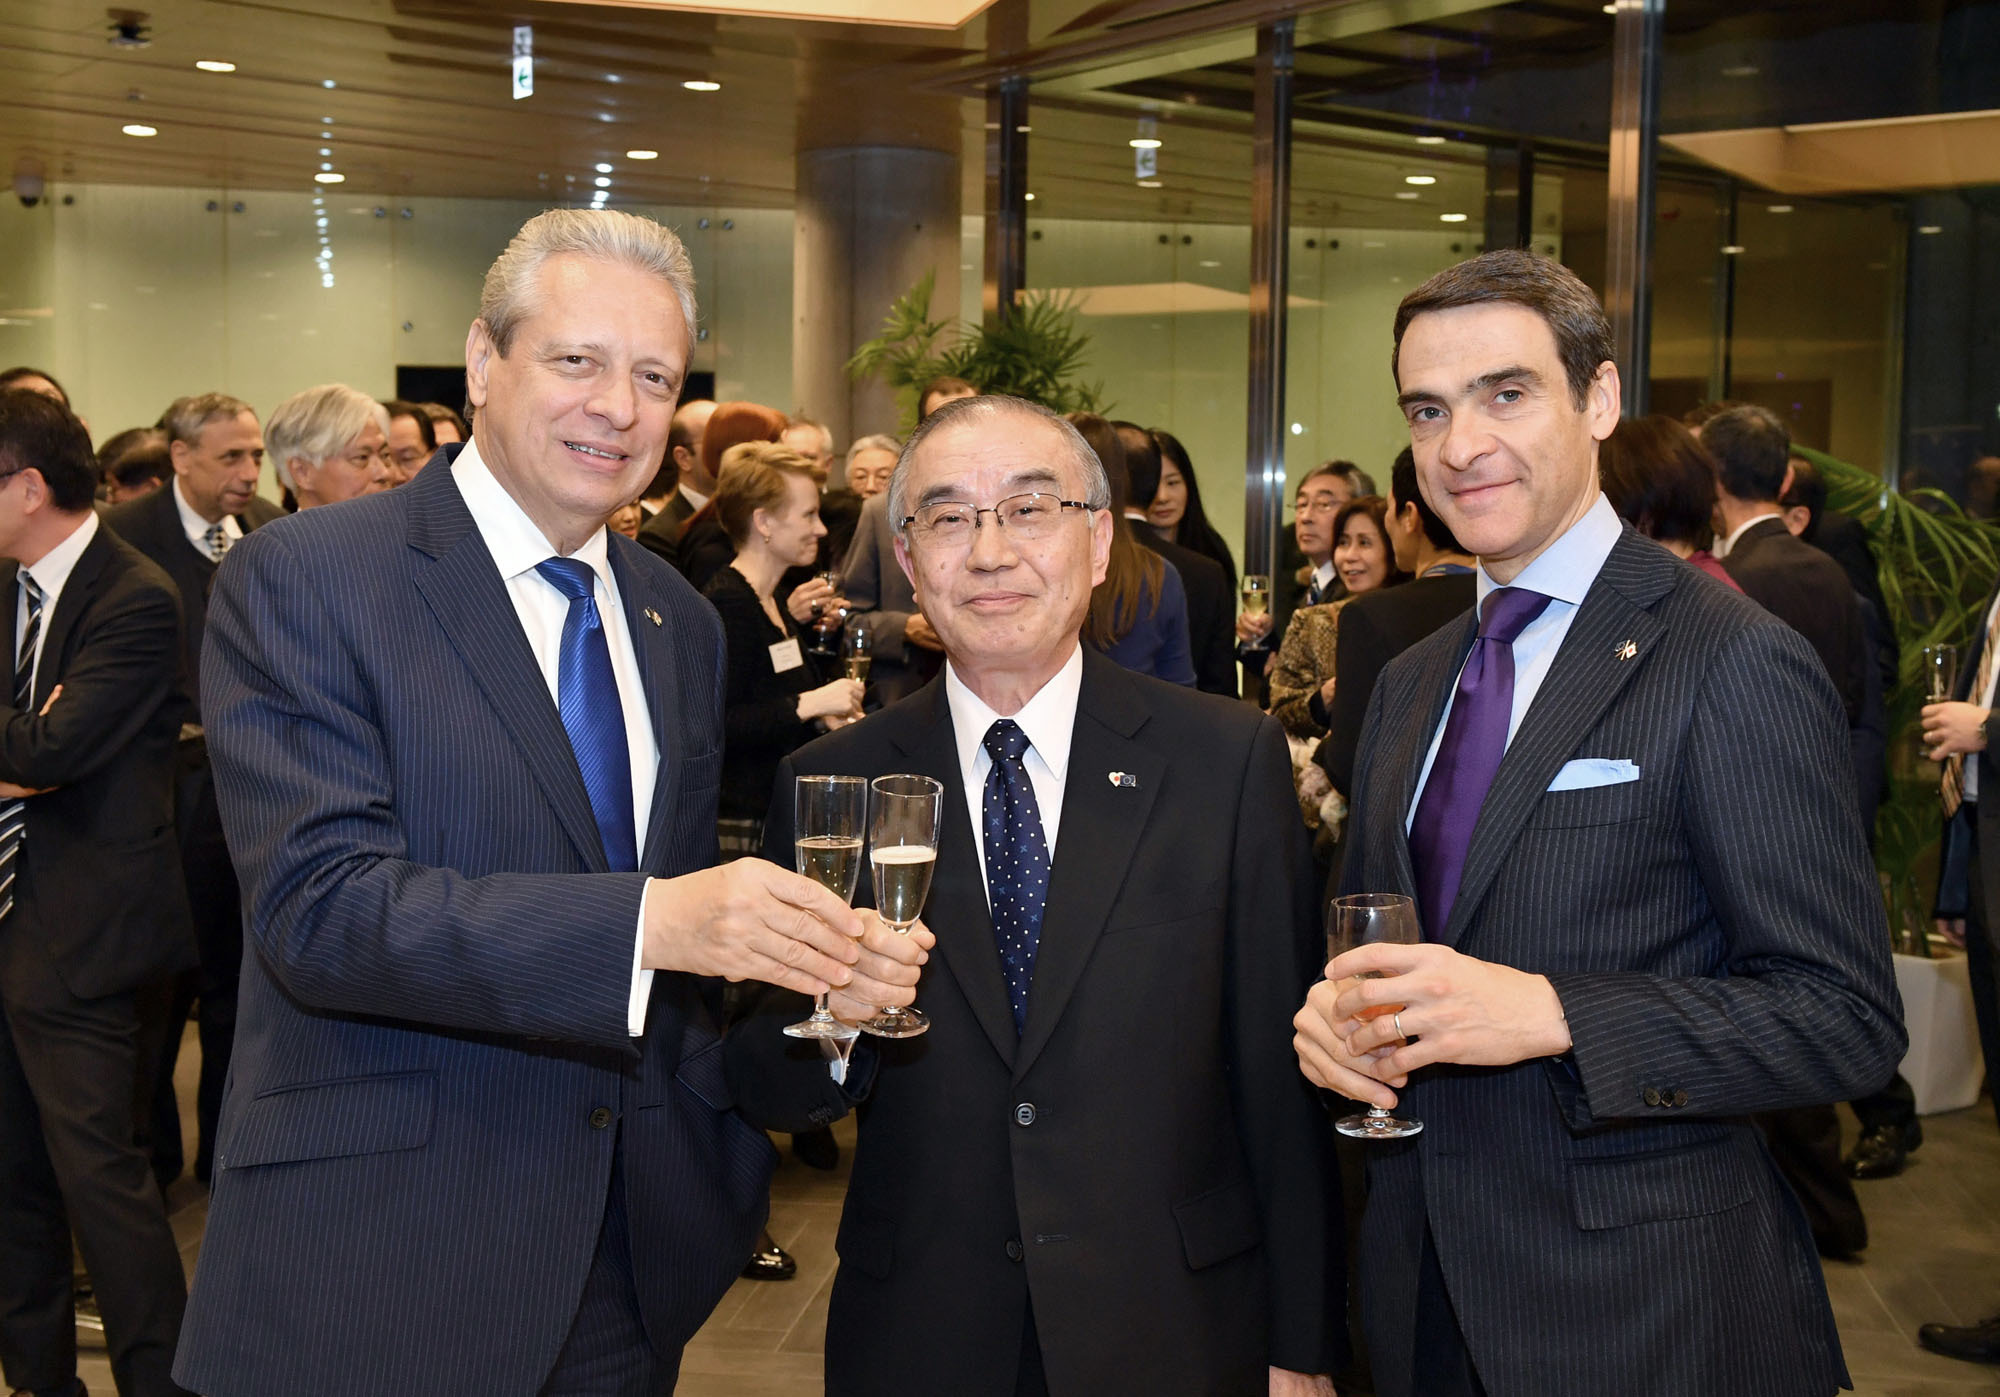 Viorel Isticioaia-Budura (left), ambassador of the Delegation of the European Union of Japan, poses for a photo alongside Toshiro Tanaka (center), professor emeritus at Keio University, and Francesco Fini, deputy head of the delegation, during a year-end party at Europa House in Tokyo on Dec. 7. |  YOSHIAKI MIURA